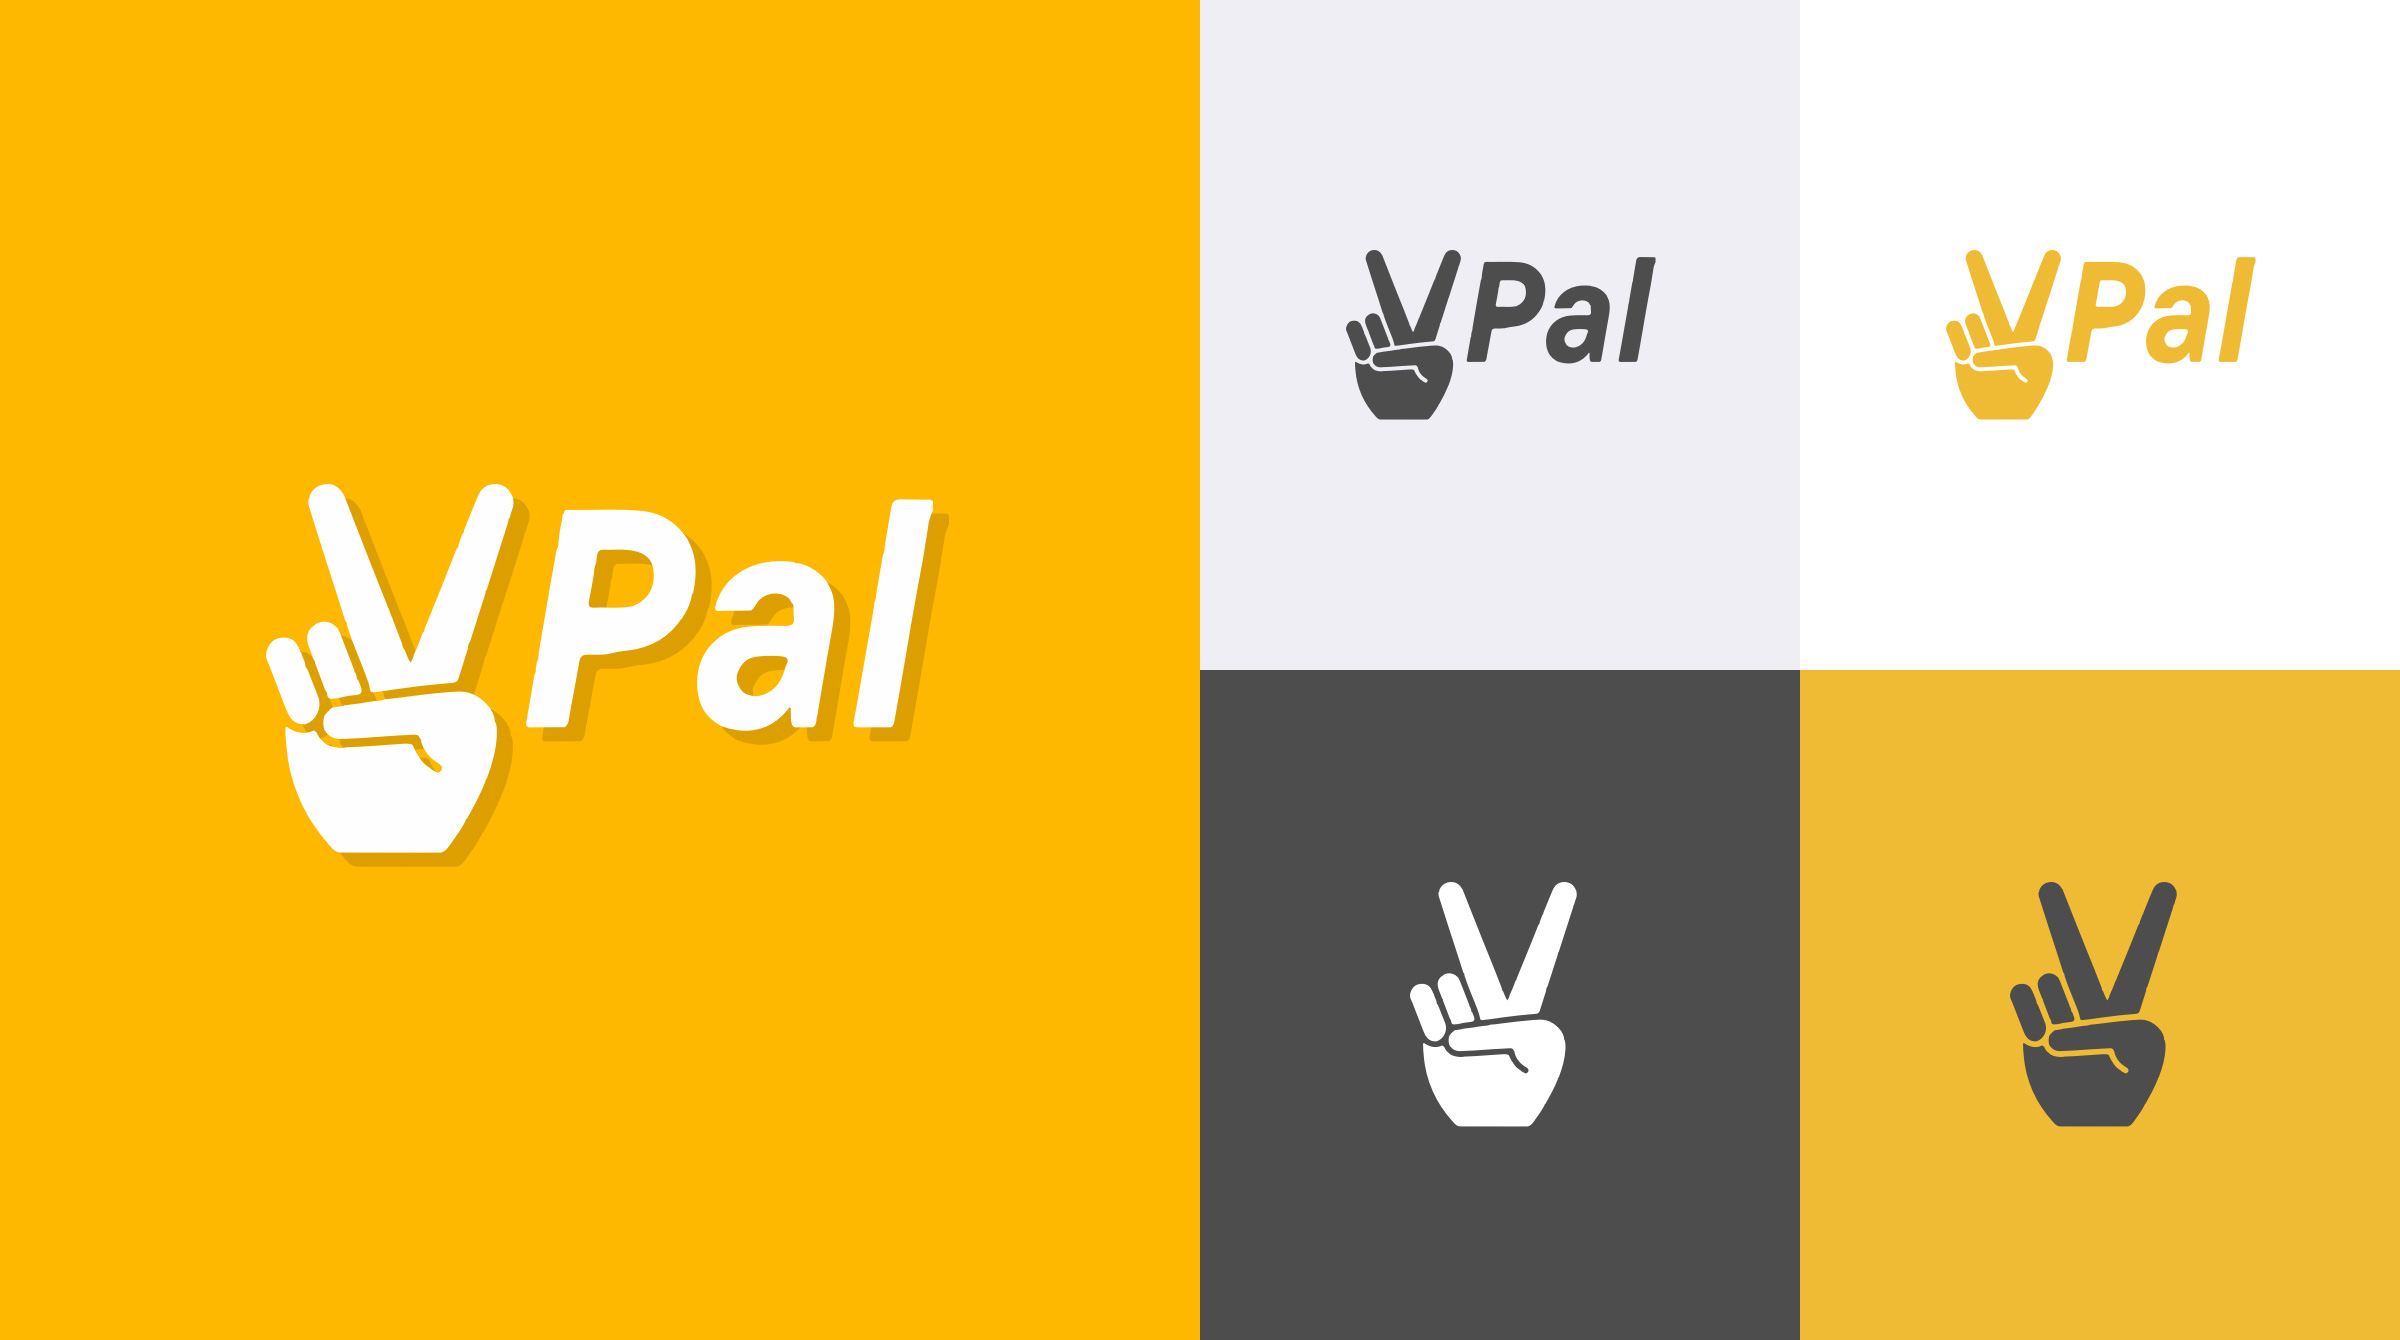 Grid of the VPal brand identity and branding system.